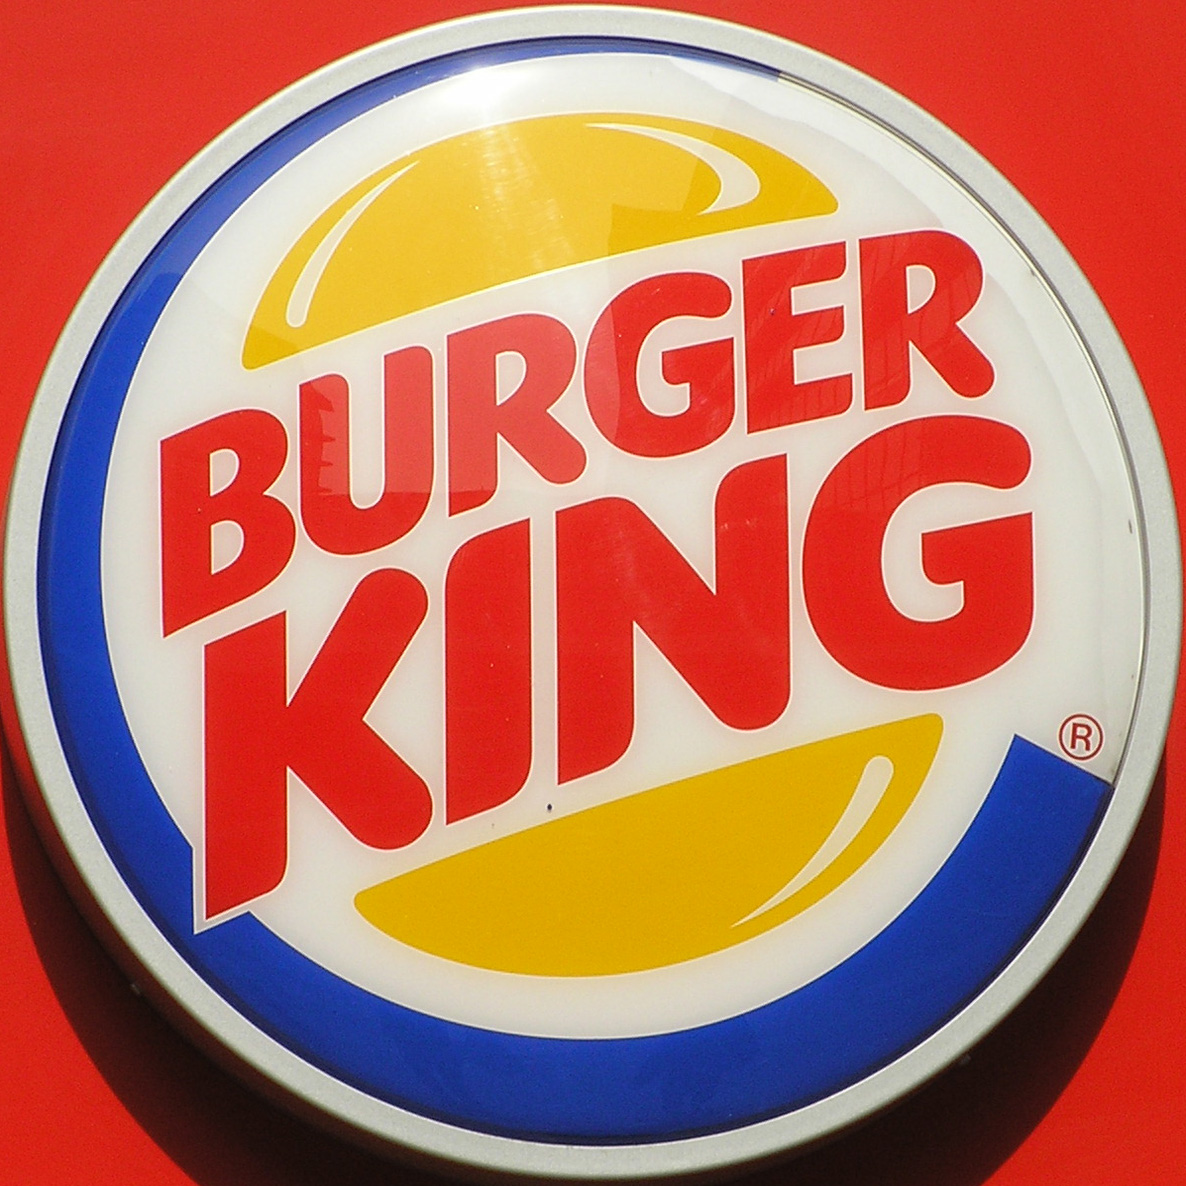 071MB64 moreover Our History further New Burger King Outlet In North Pattaya moreover Mascots in addition 1086977. on oscar mayer slogan